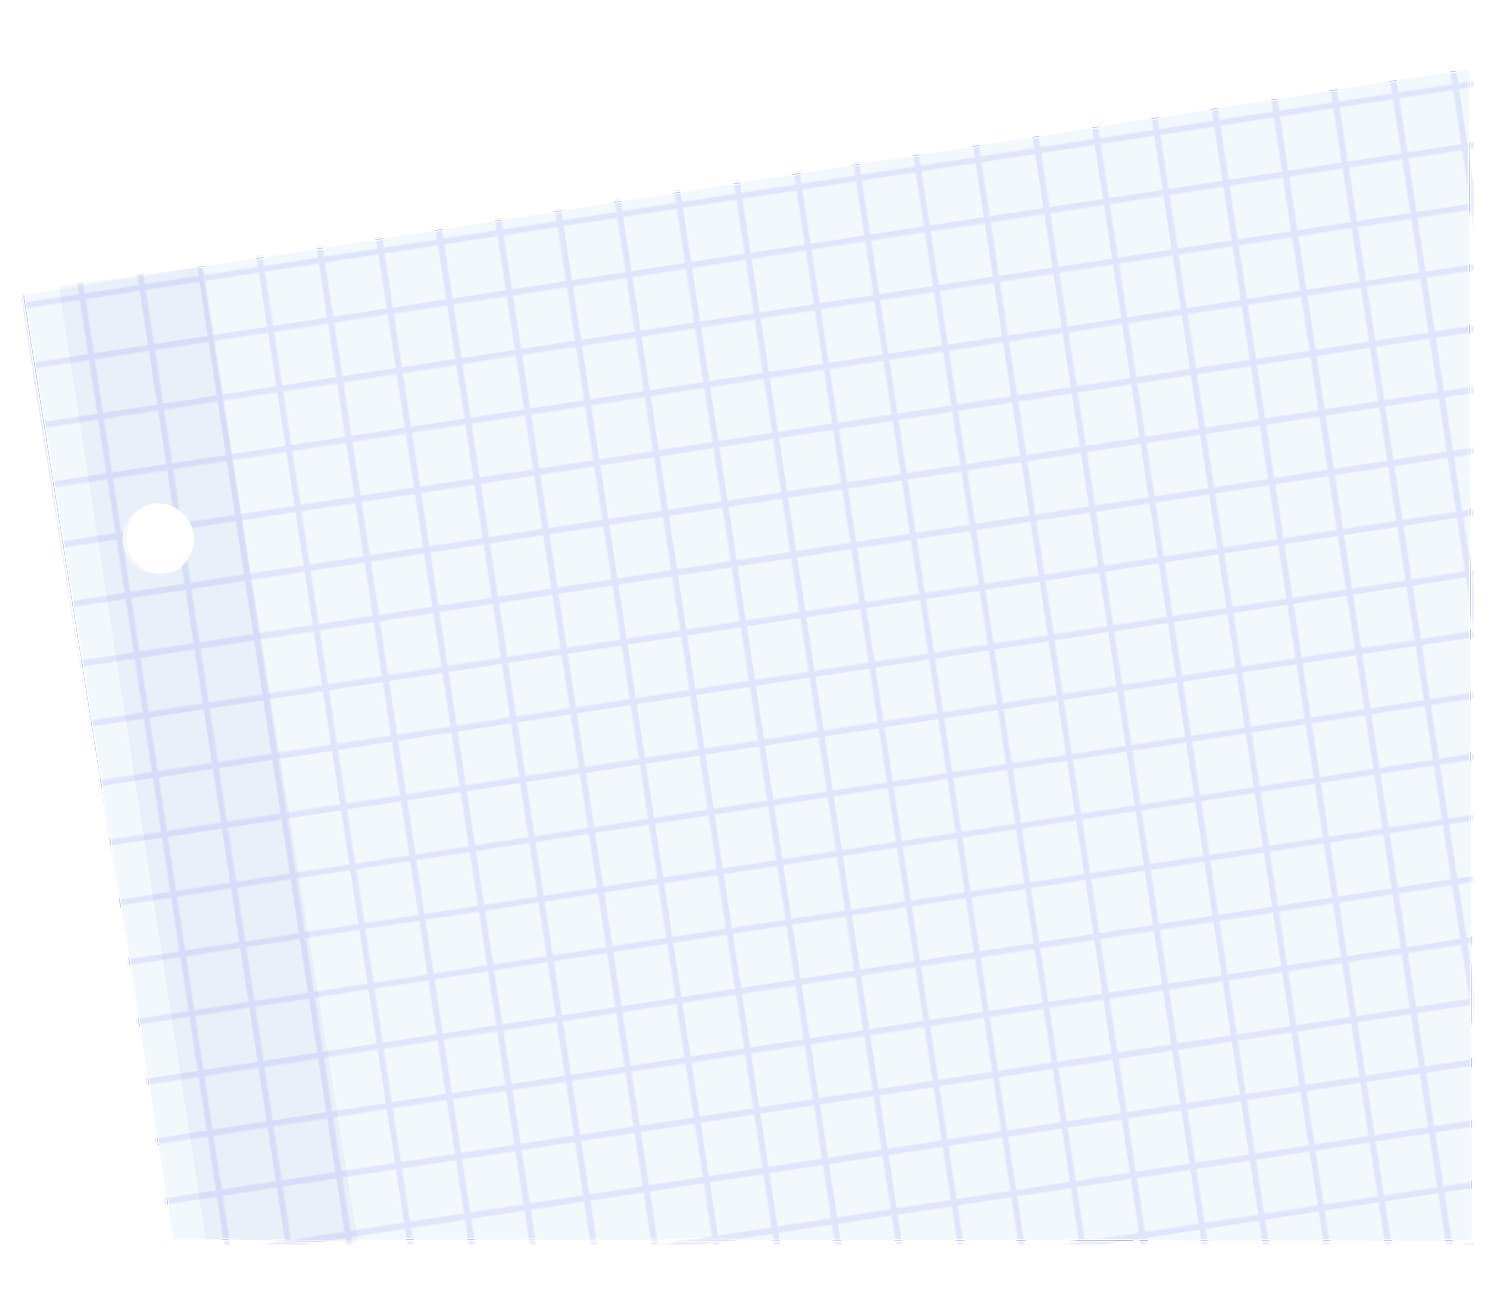 Mead Filler Paper, Loose Leaf Paper, Graph Ruled Paper, Q4, 100 Sheets, 10-1/2'' x 8'', Reinforced, White, 3 Pack (38040) by Mead (Image #3)